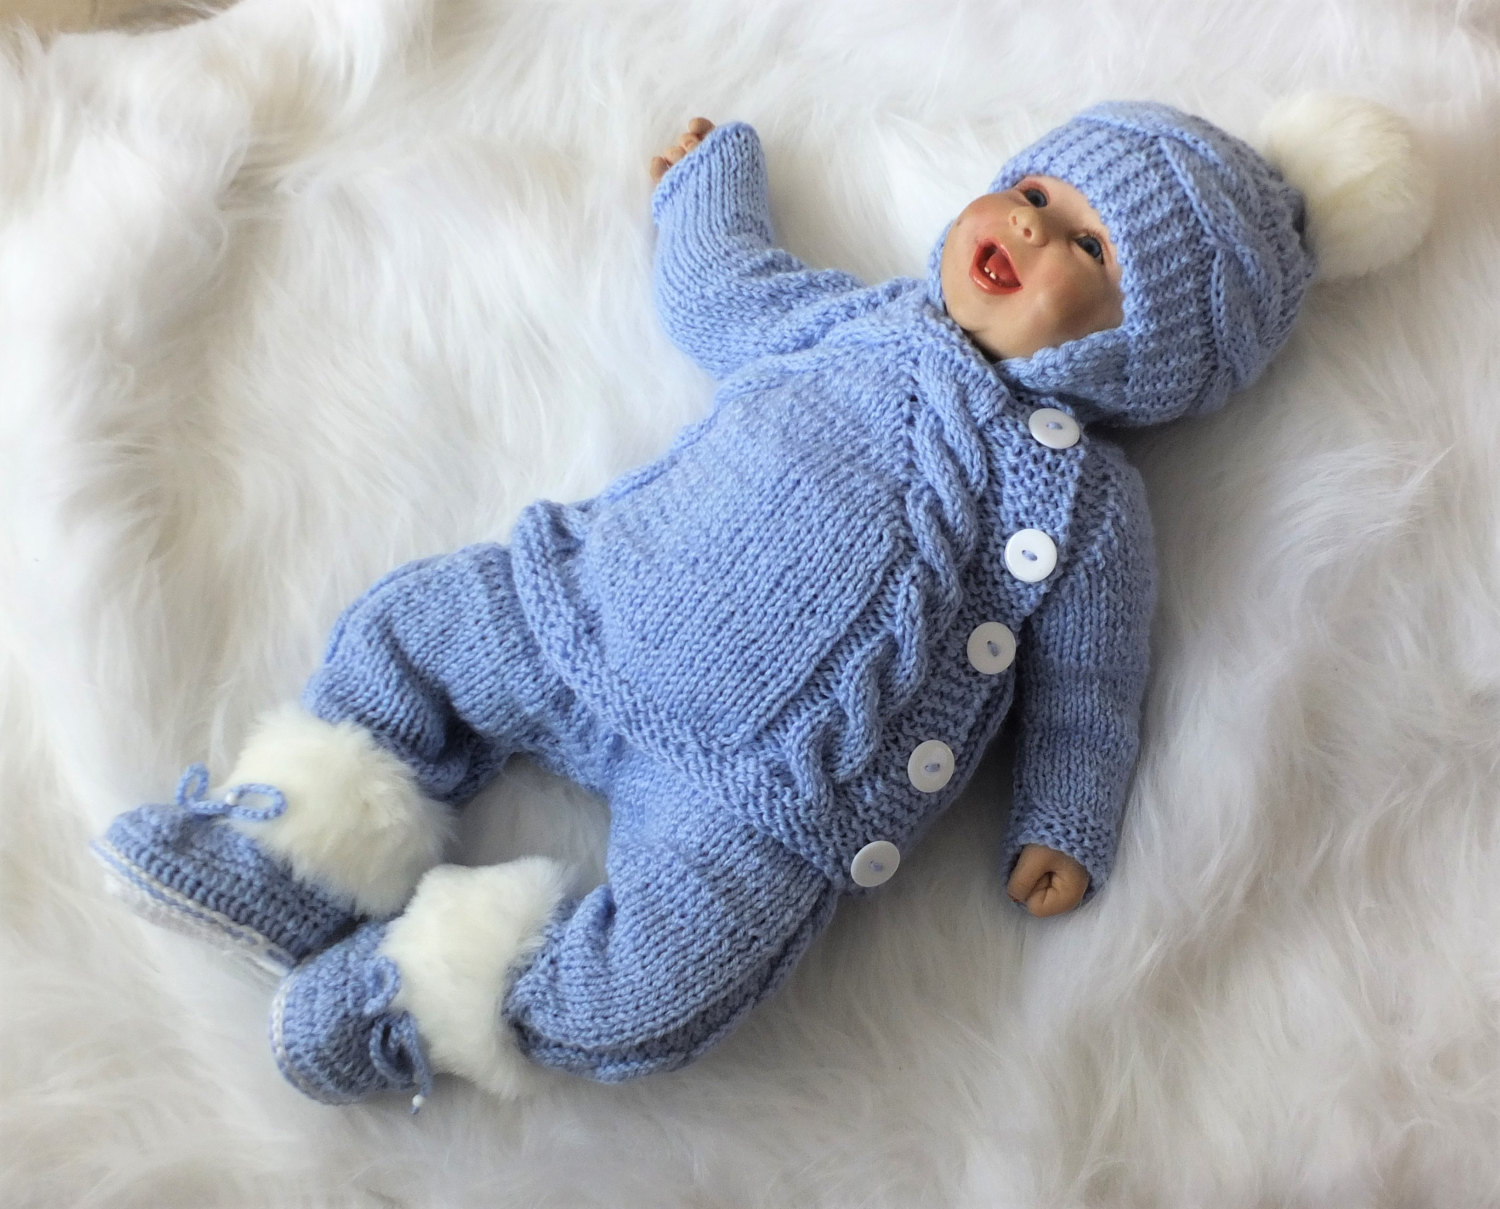 knitted baby clothes 🔎zoom jxflznr